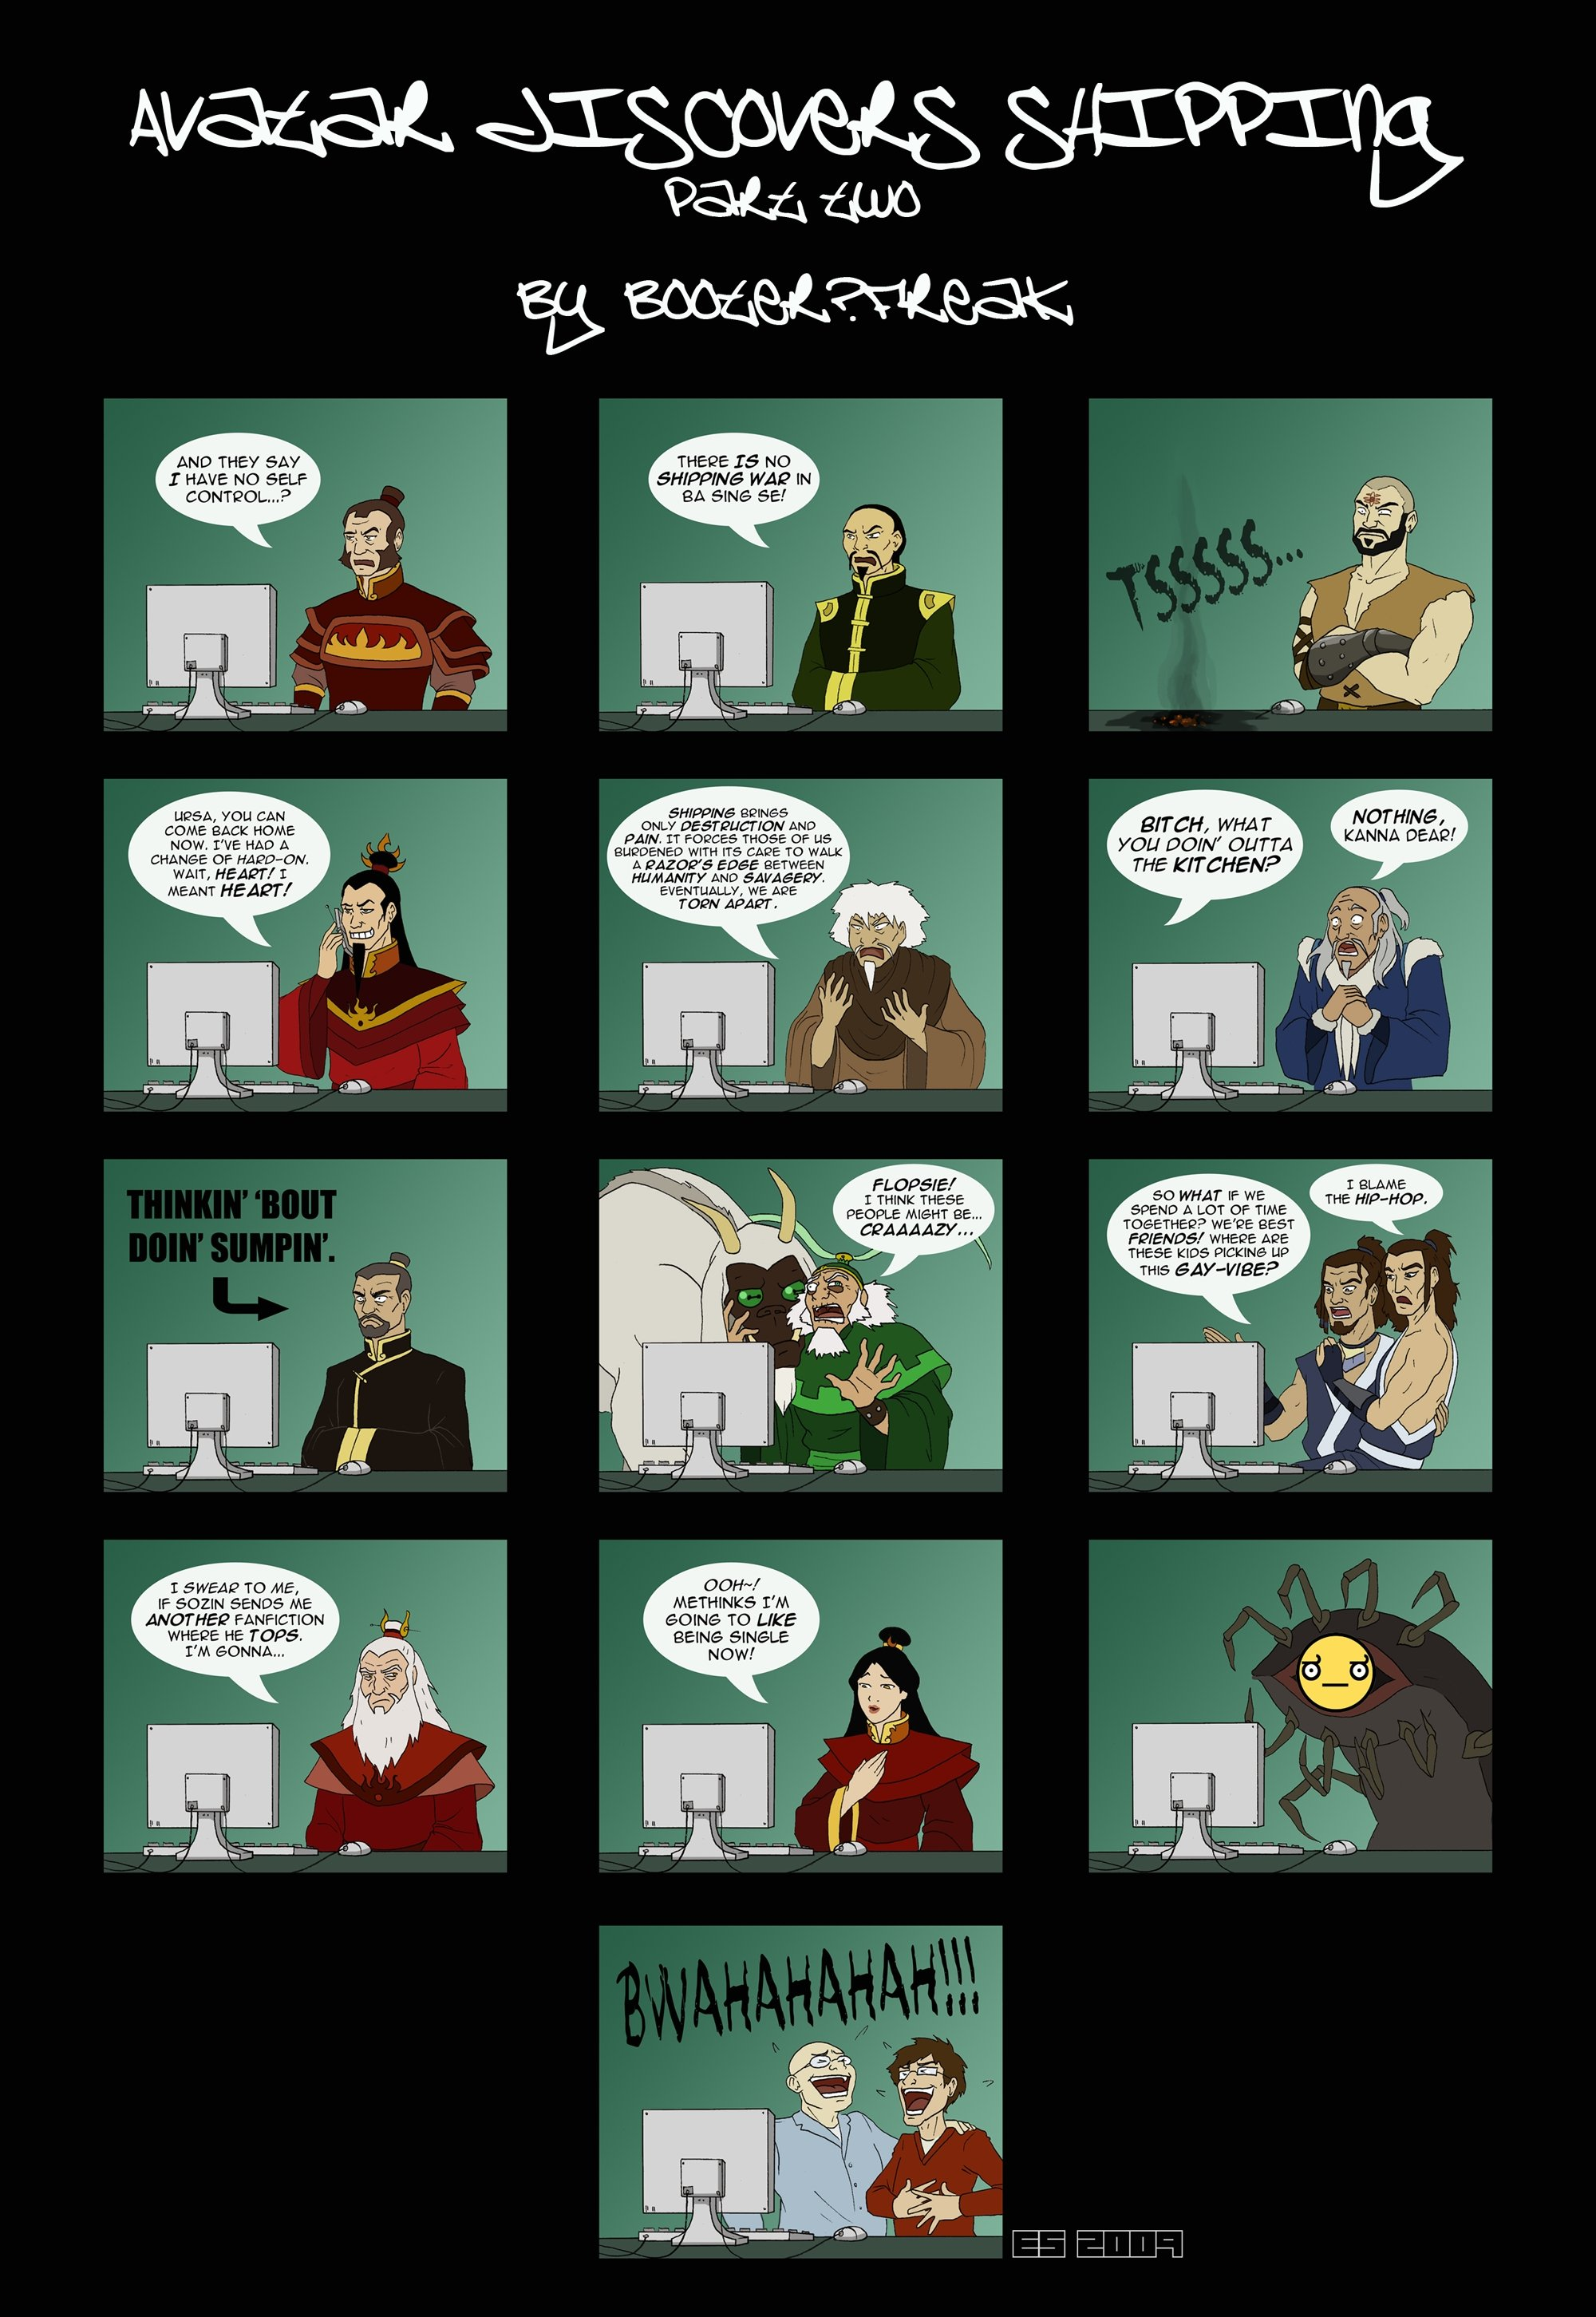 Avatar discovers shipping - part 2   Avatar: The Last ...